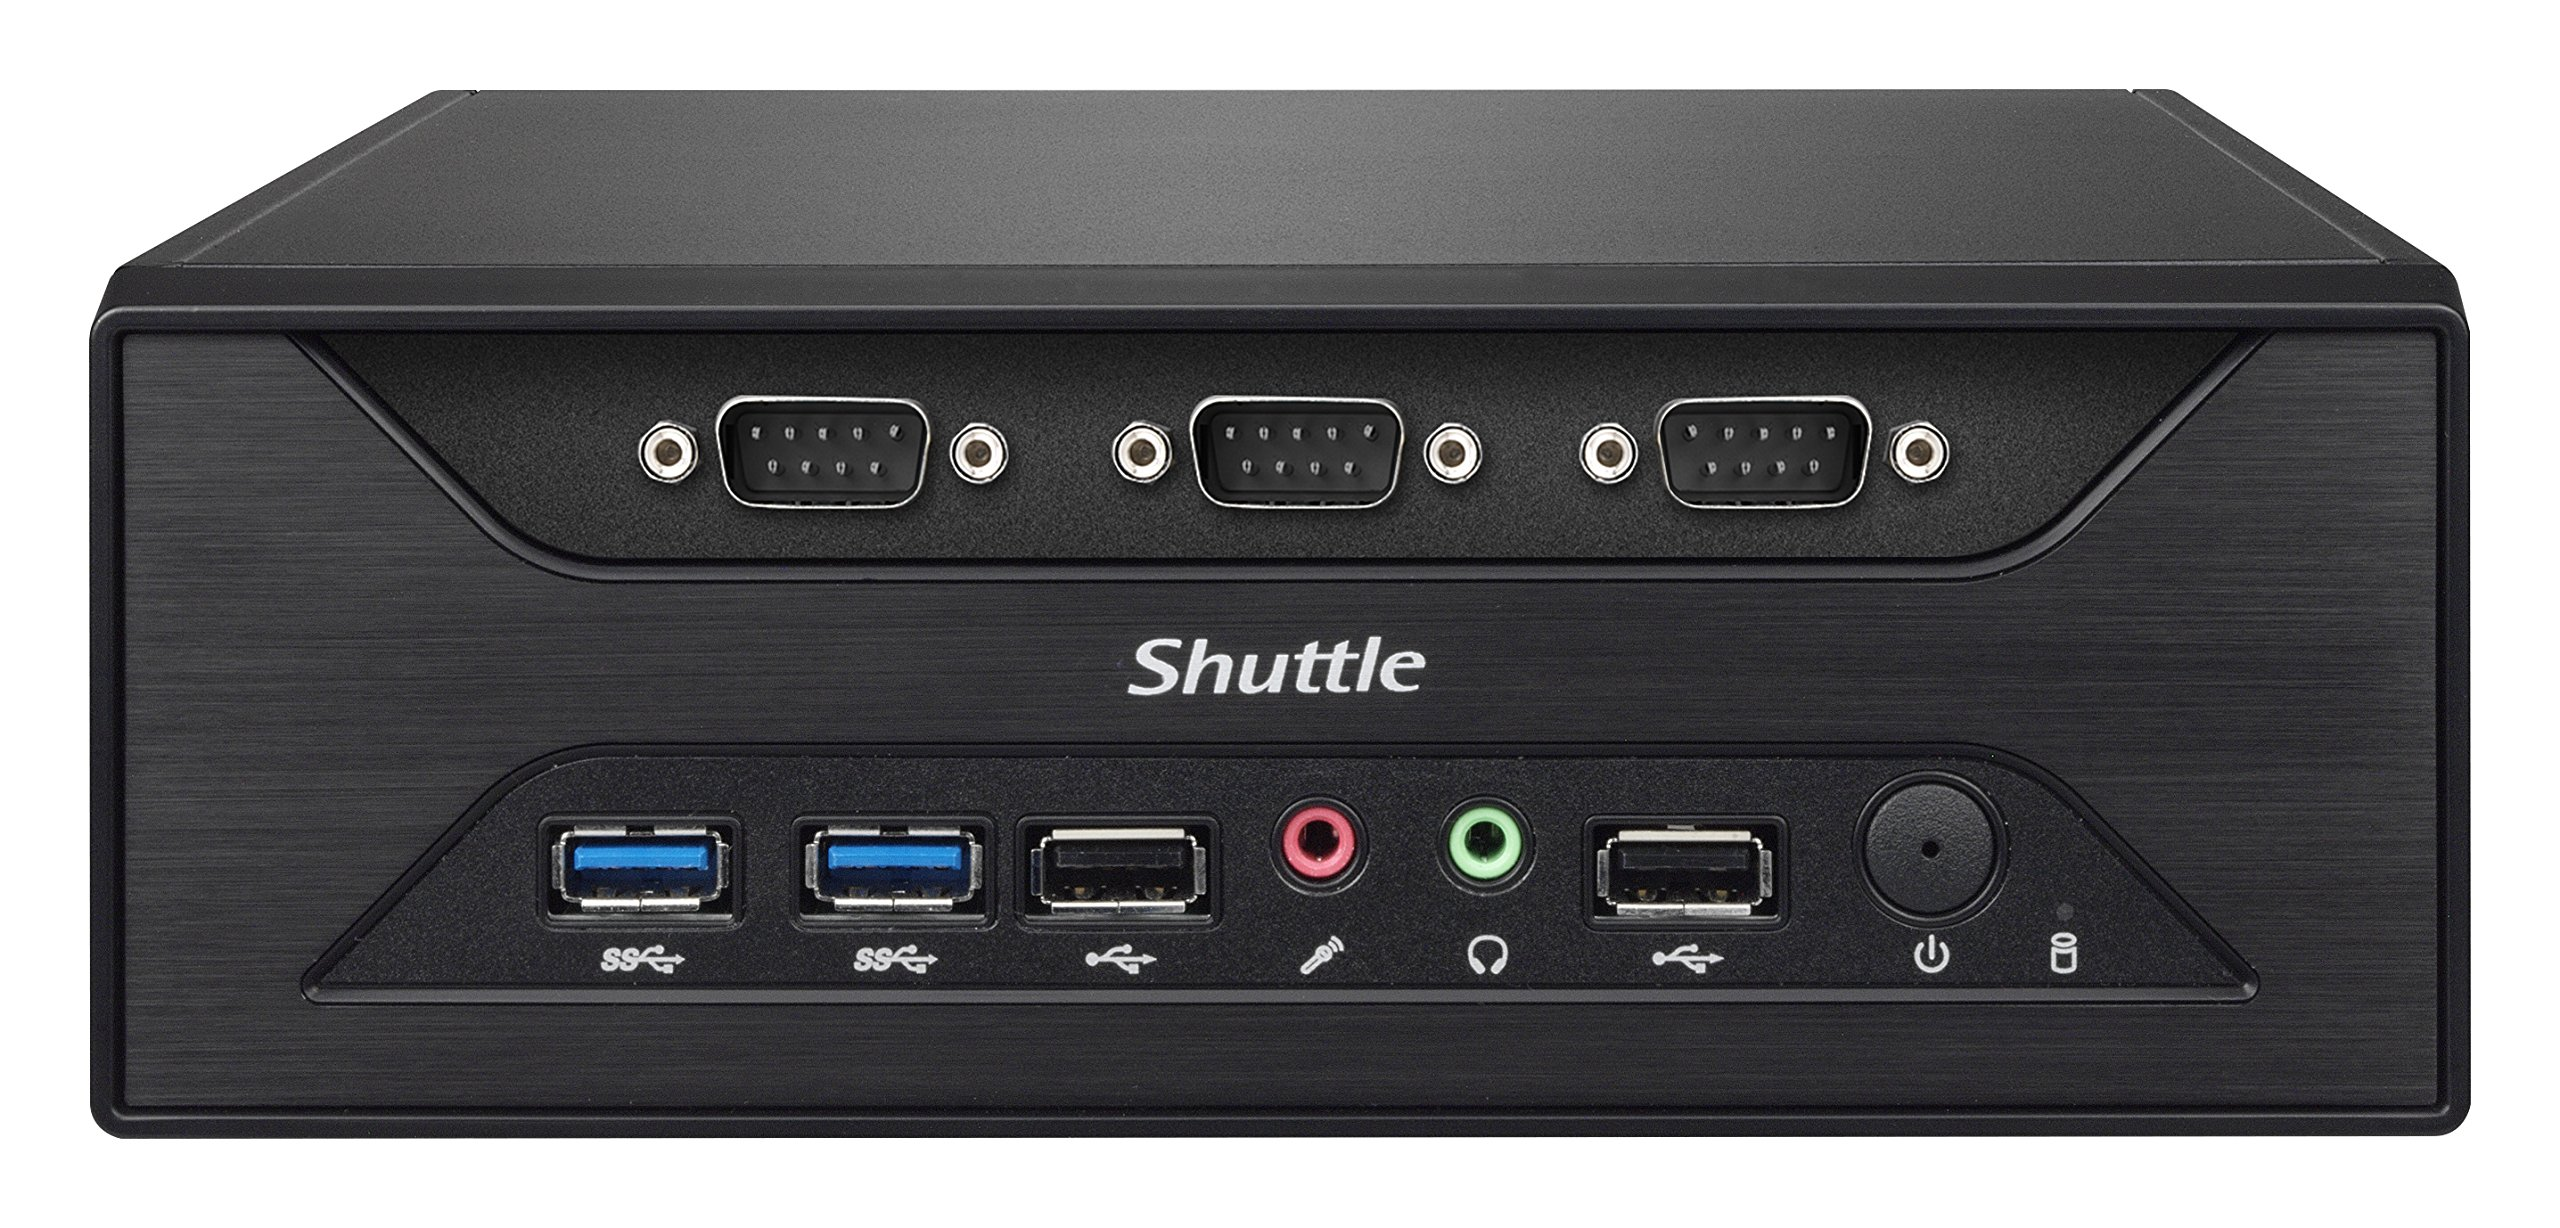 Shuttle XPC Slim XC60J Intel Celeron J3355, 8 x COM Ports, Support SODIMM DDR3L (Max. 16GB), Include Heatpipe Cooling Module by Shuttle (Image #4)